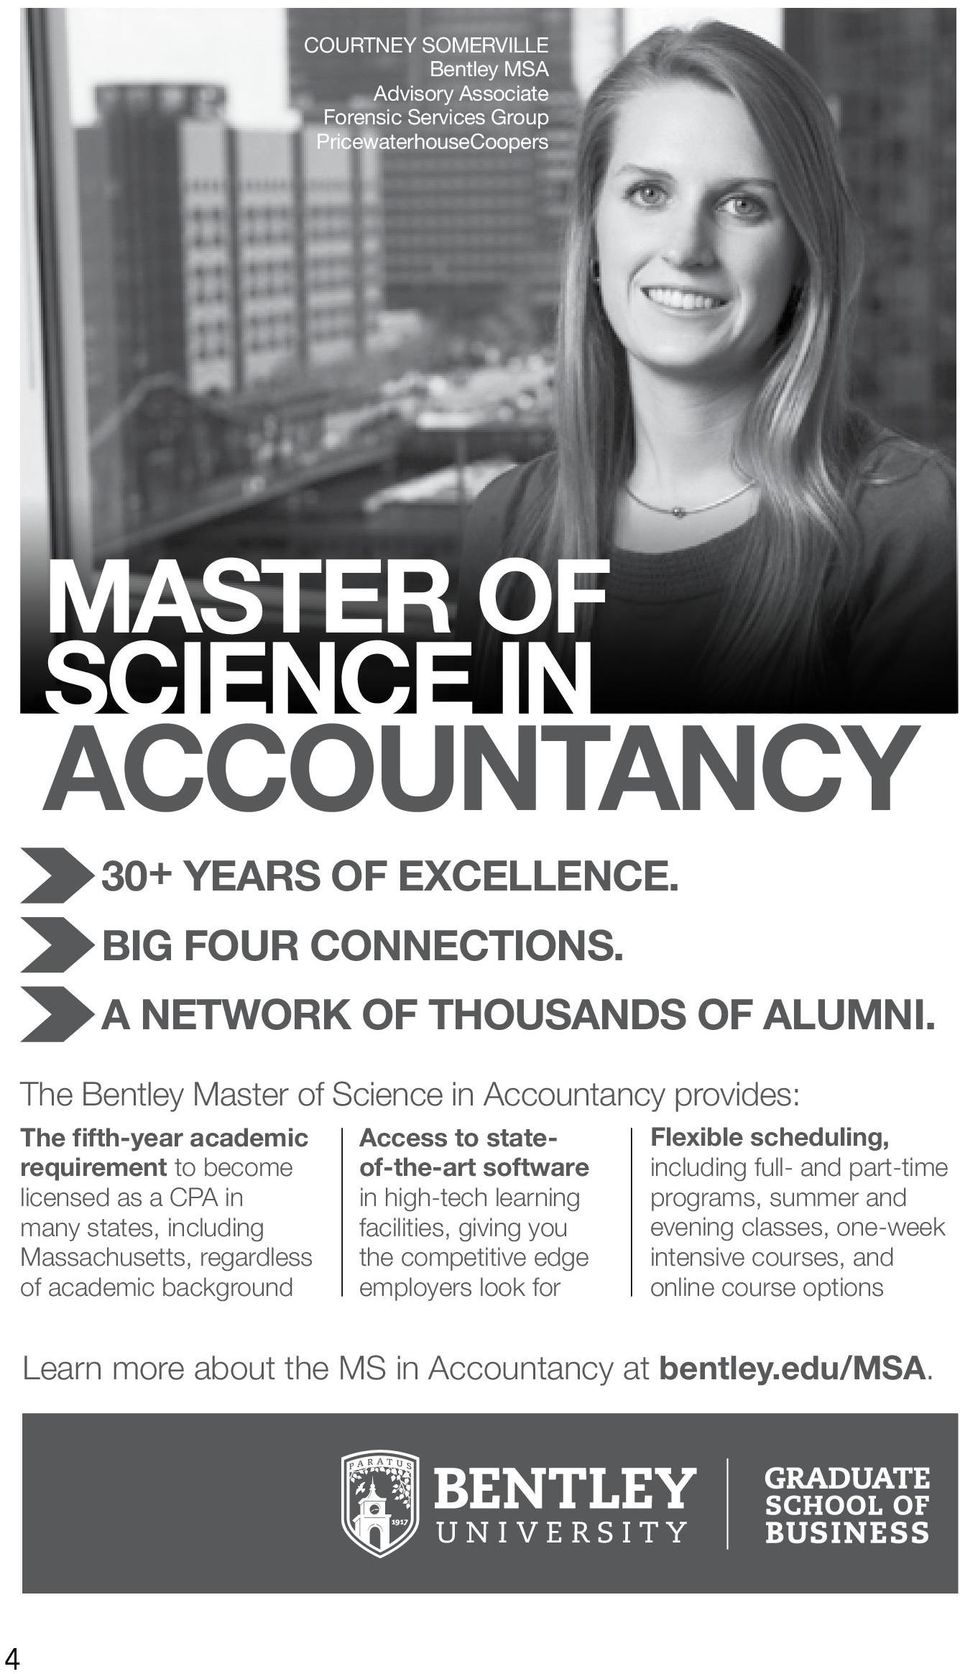 The Bentley Master of Science in Accountancy provides: The fifth-year academic requirement to become licensed as a CPA in many states, including Massachusetts, regardless of academic